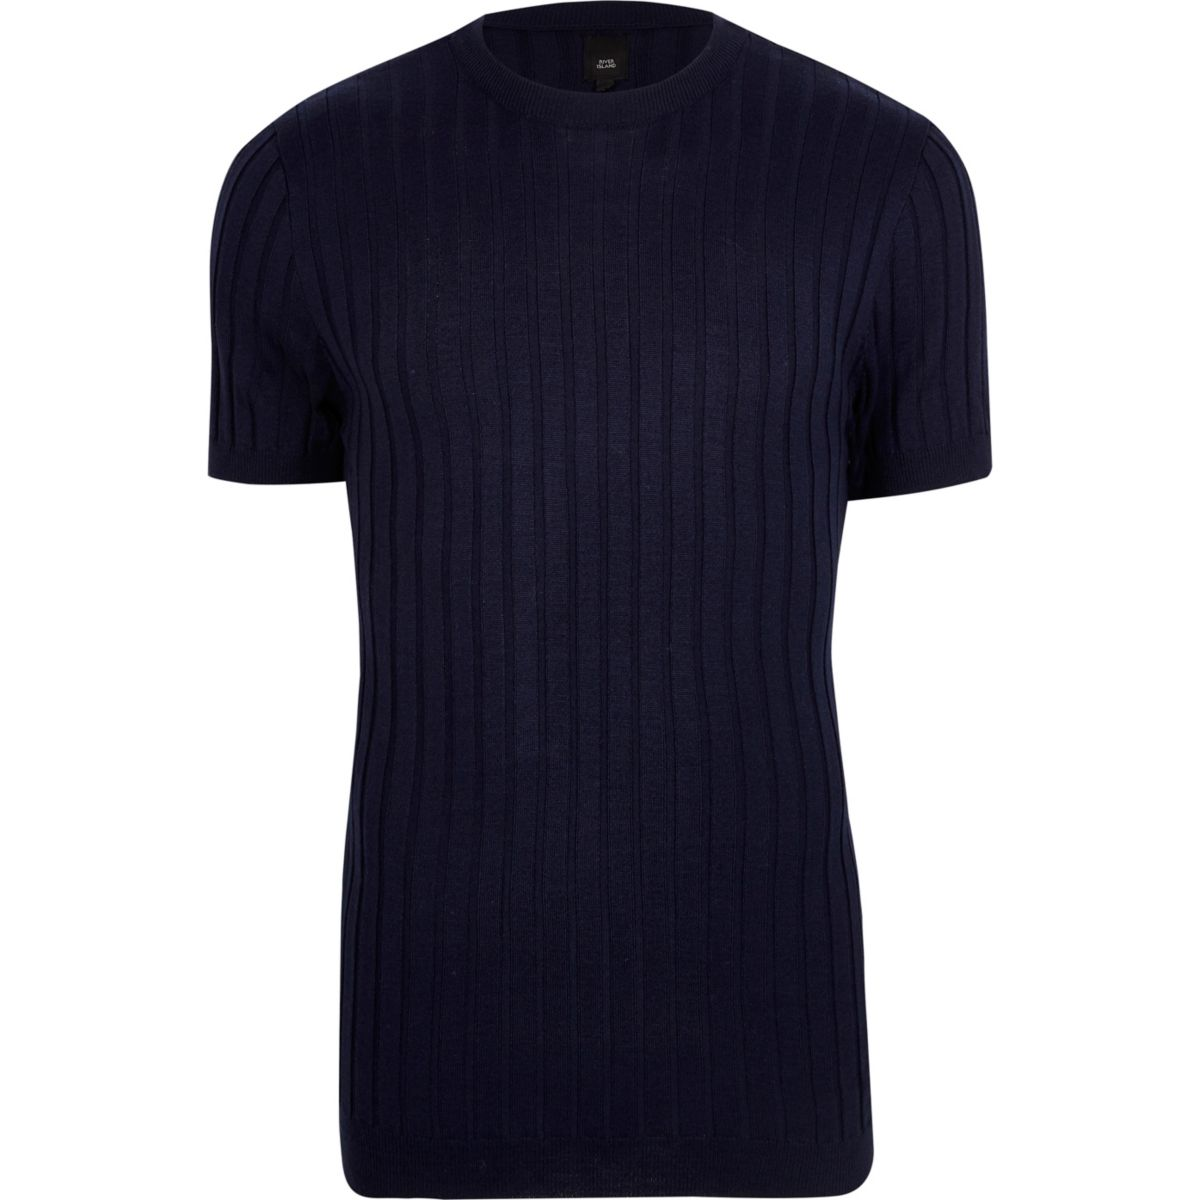 Navy blue ribbed muscle fit T-shirt